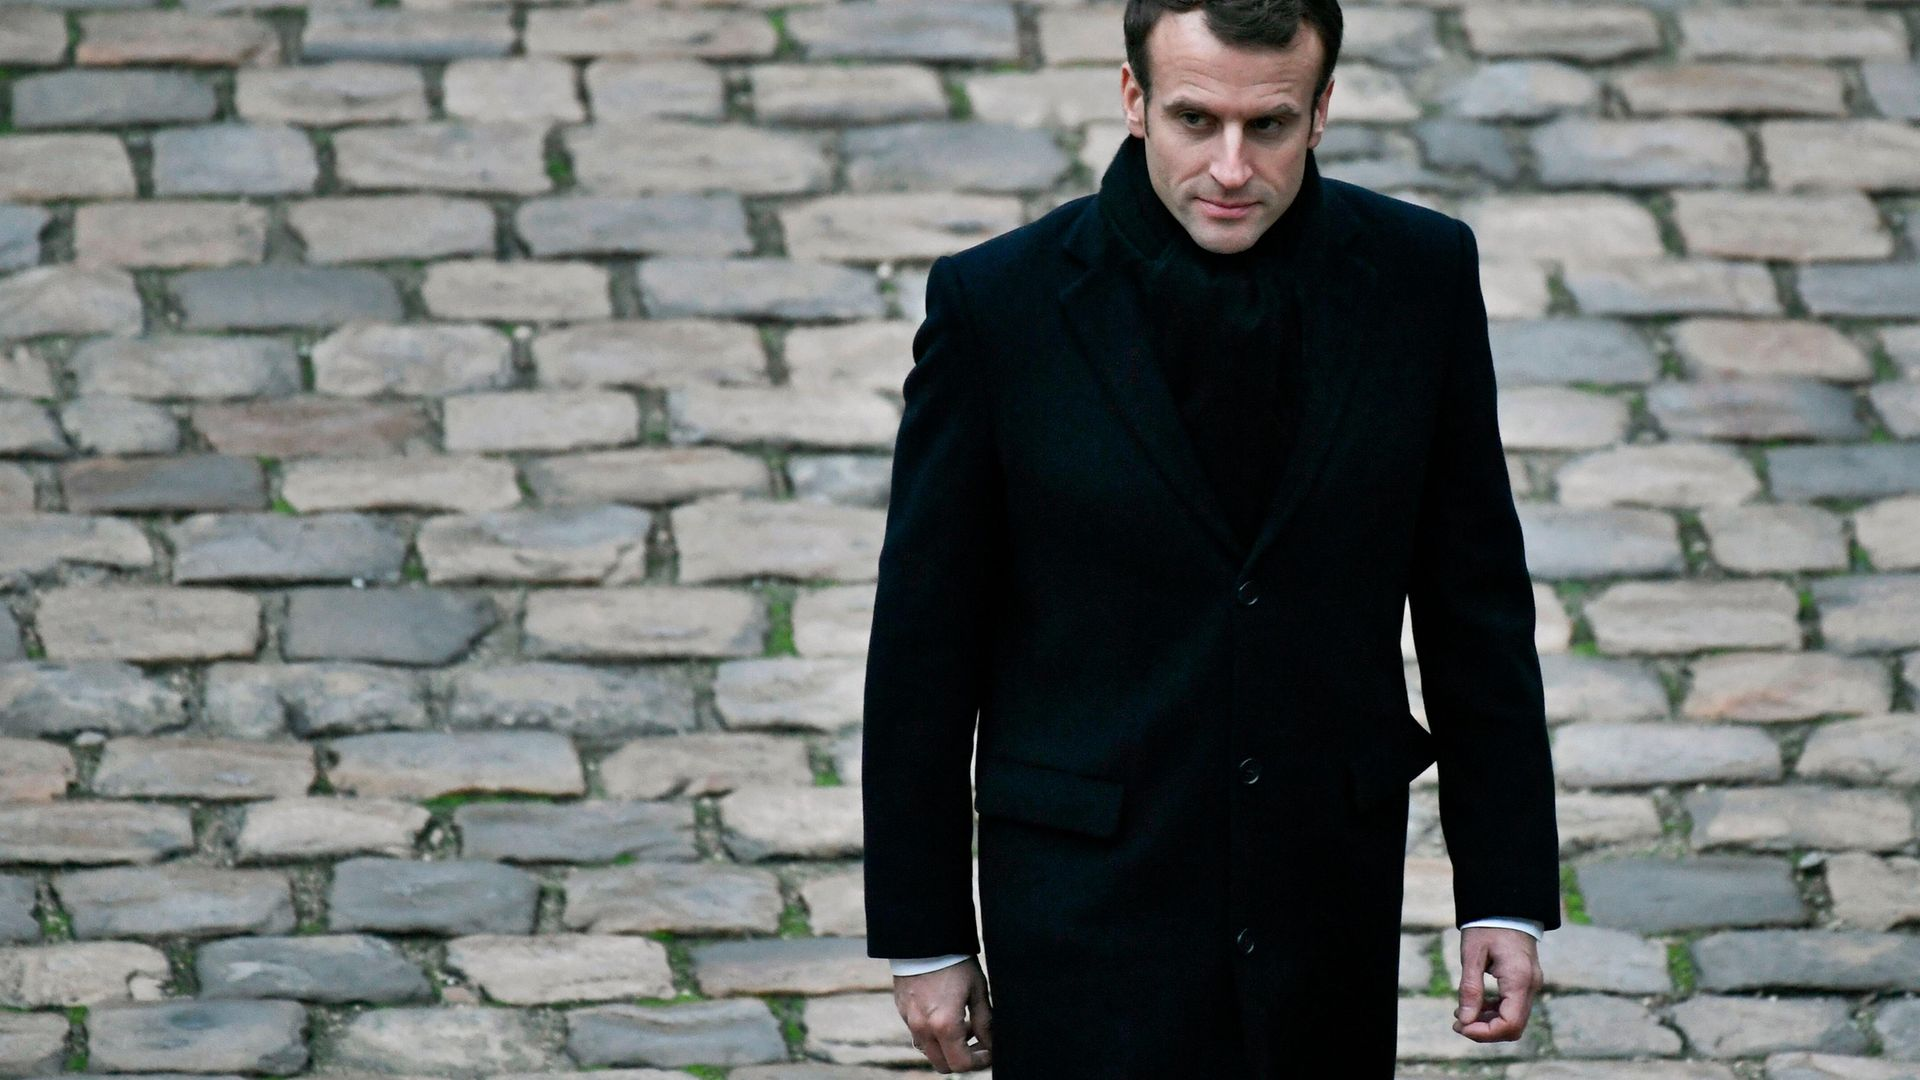 Emmanuel Macron at a military ceremony at the Invalides in Paris, in November 2018 - Credit: AFP via Getty Images